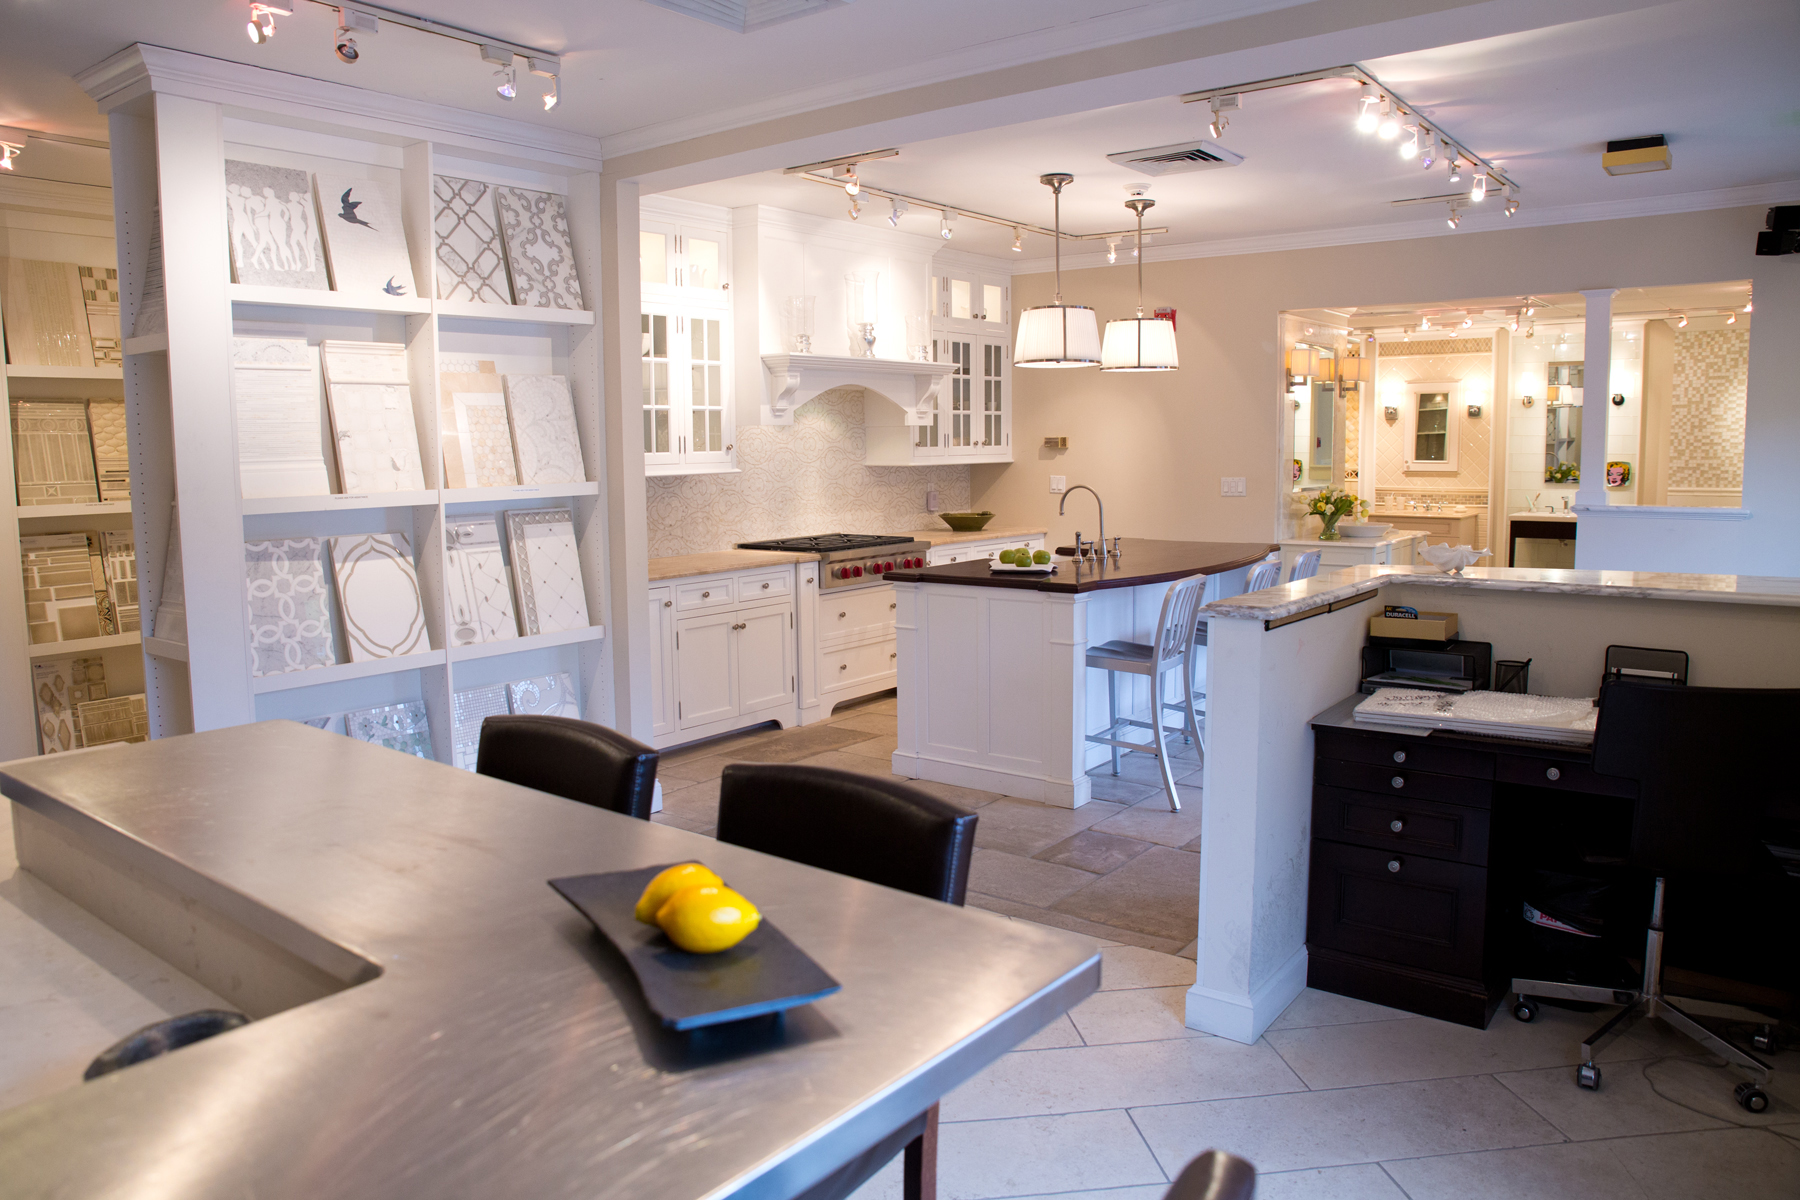 Tile, cabinetry store expands to full kitchen, bath design ...